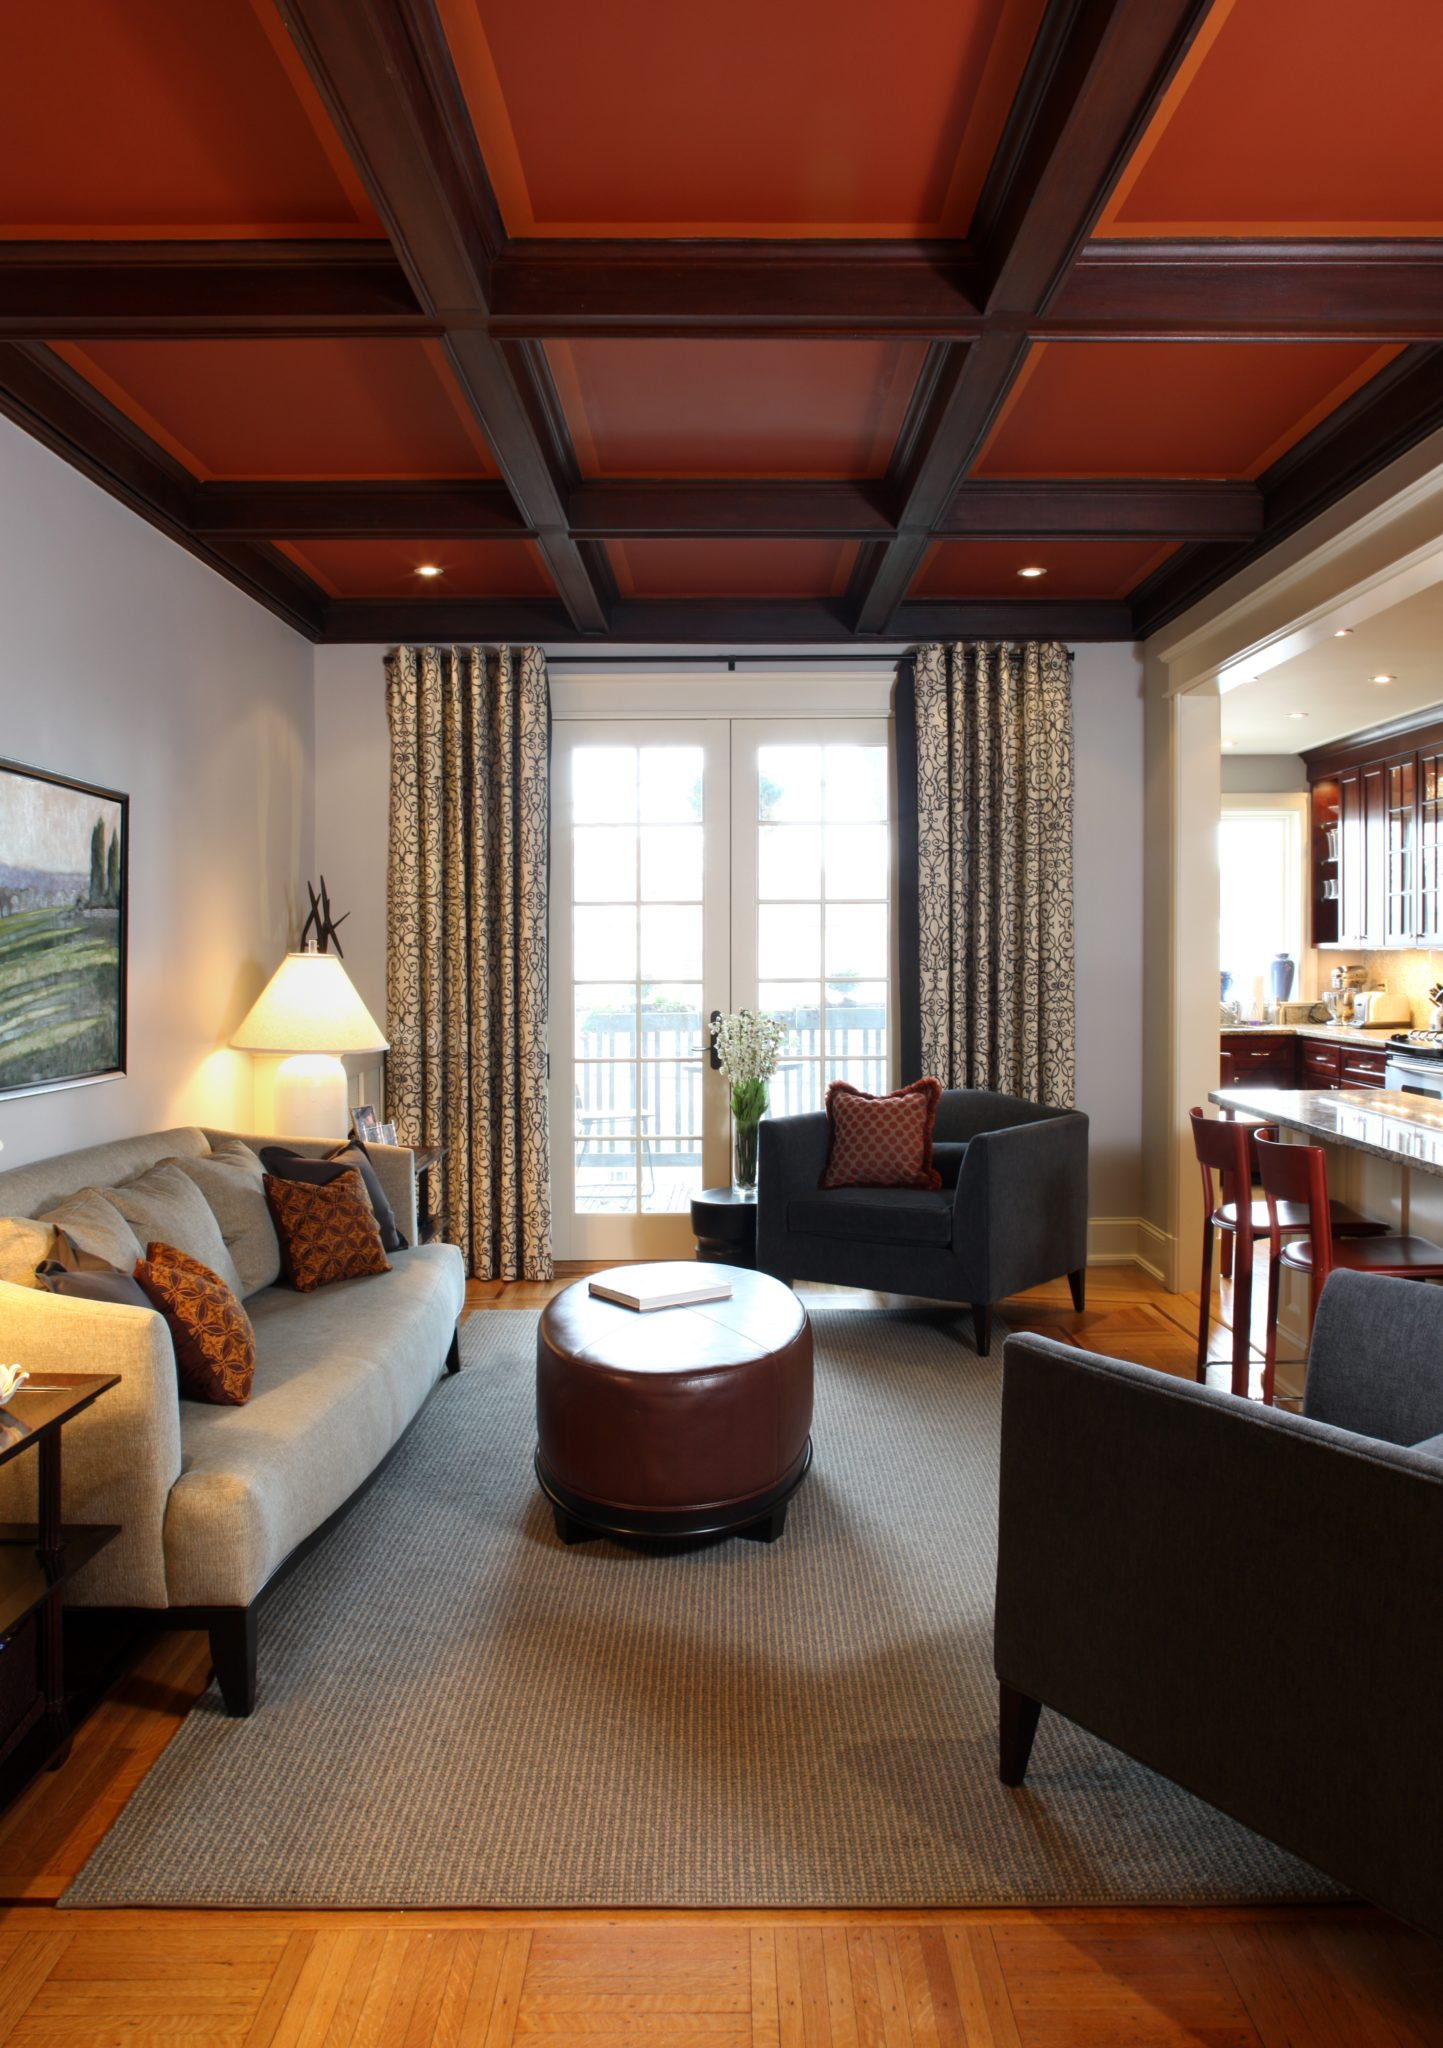 Family Room with coffered ceiling in Washington, DC rowhouse by J.D. Ireland Interior Architecture & Design